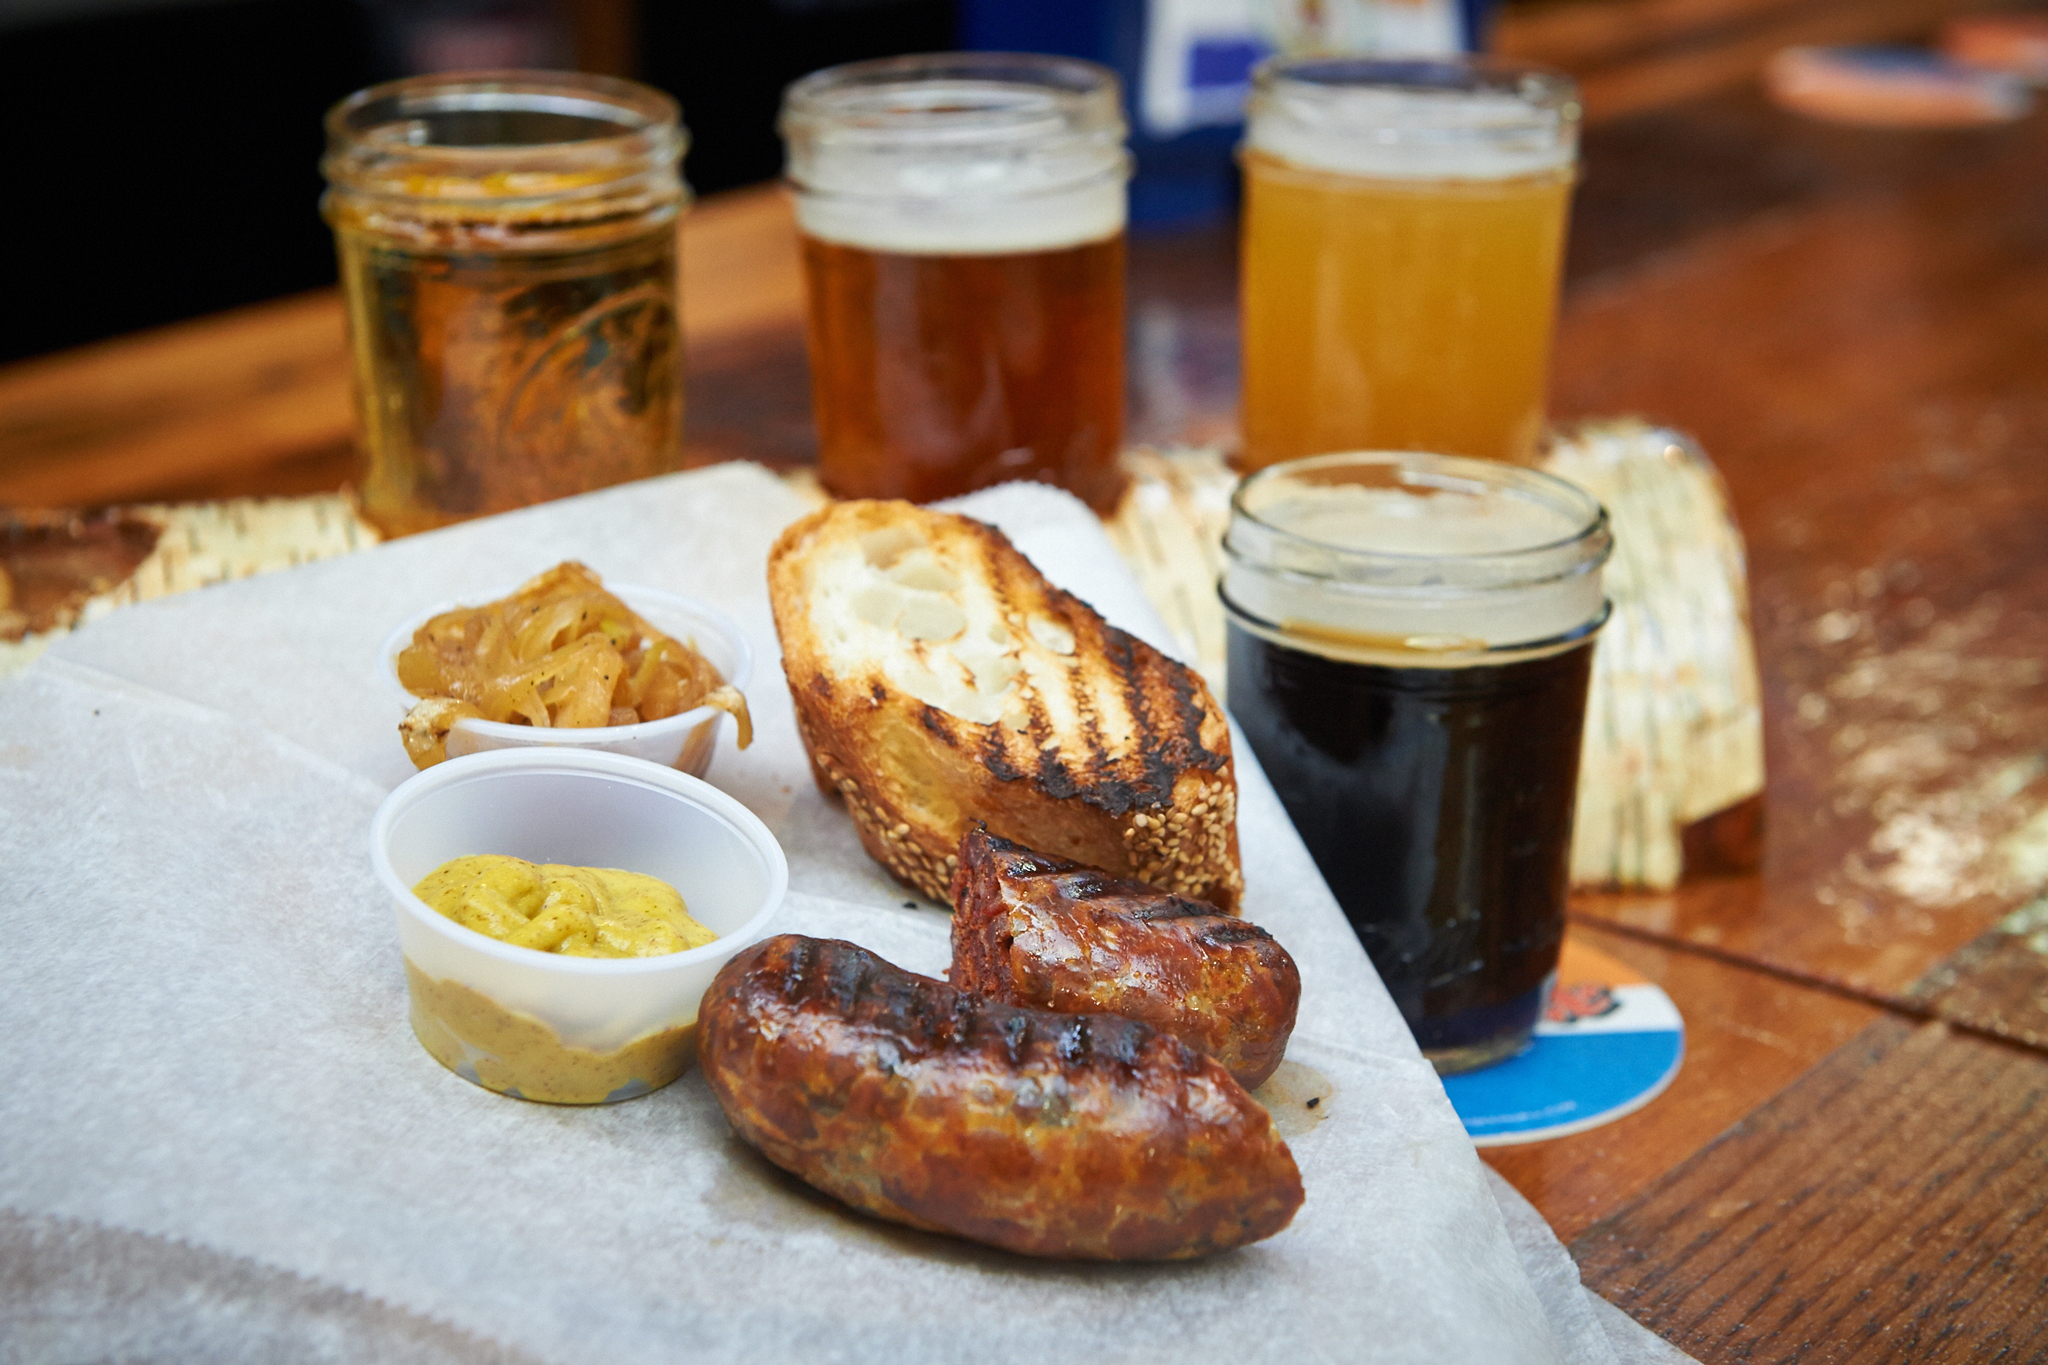 P Liver Sausage At The Bronx Beer